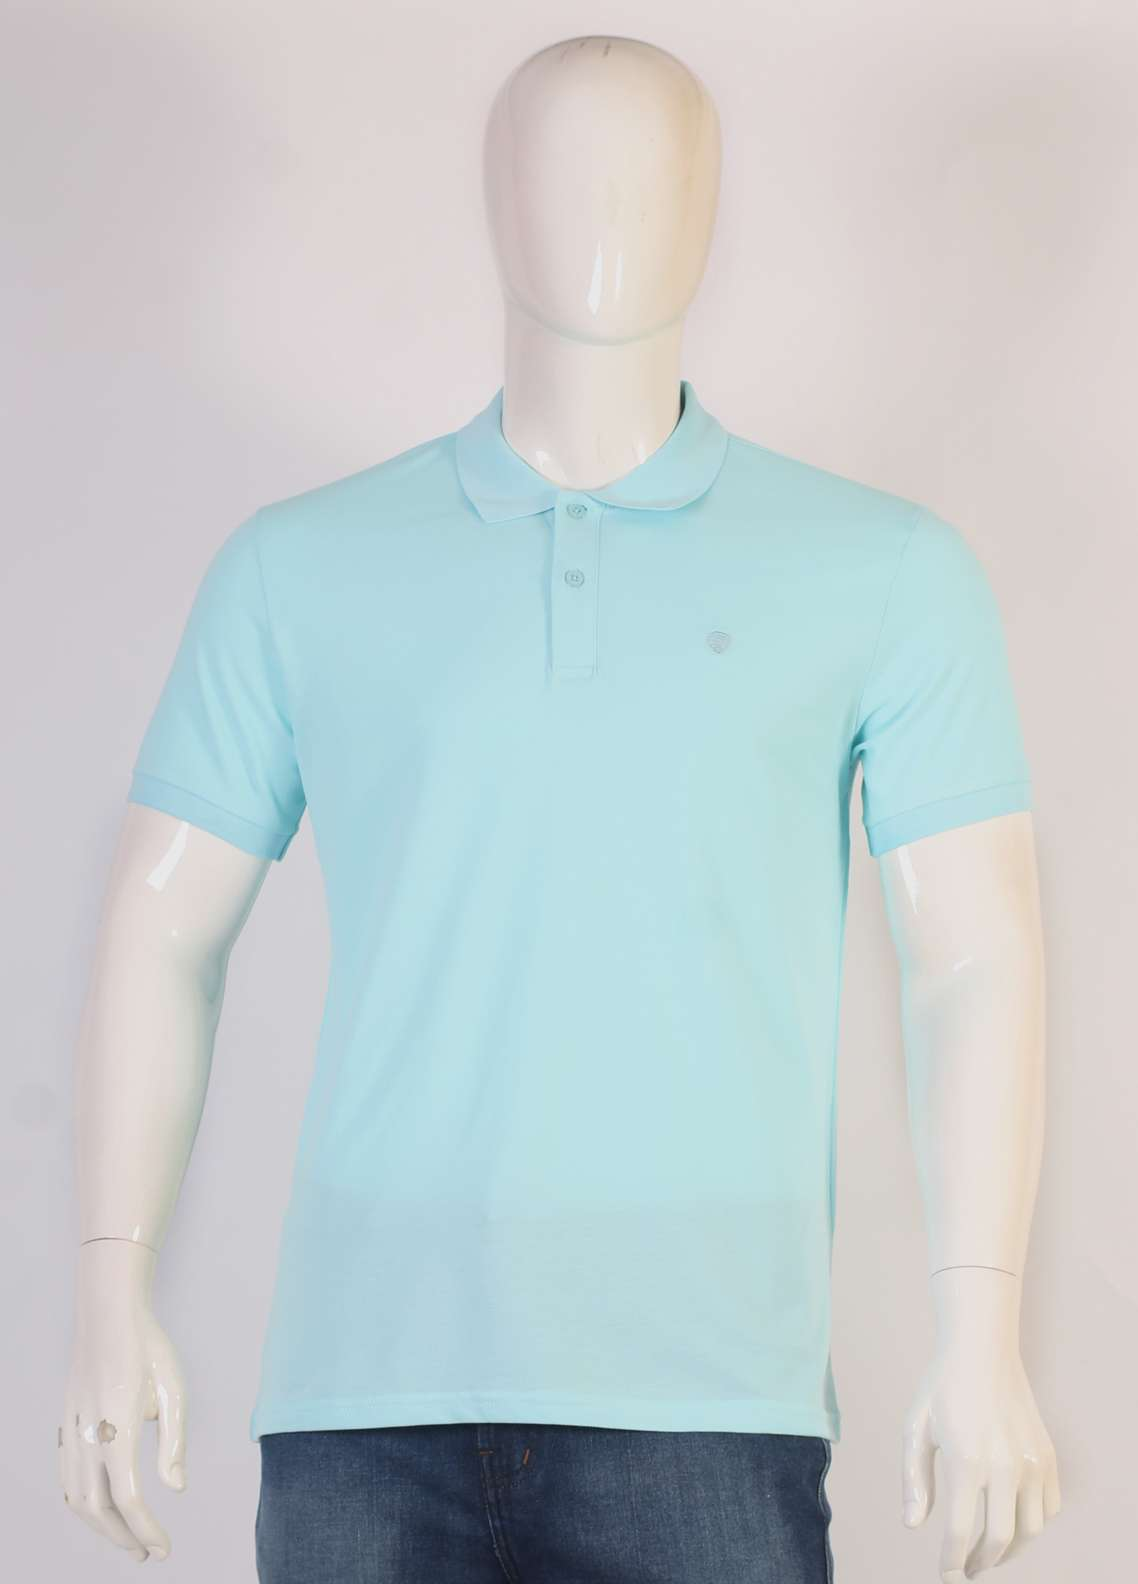 Sanaulla Exclusive Range Jersey Polo T-Shirts for Men - Sky Blue TKM18S 93